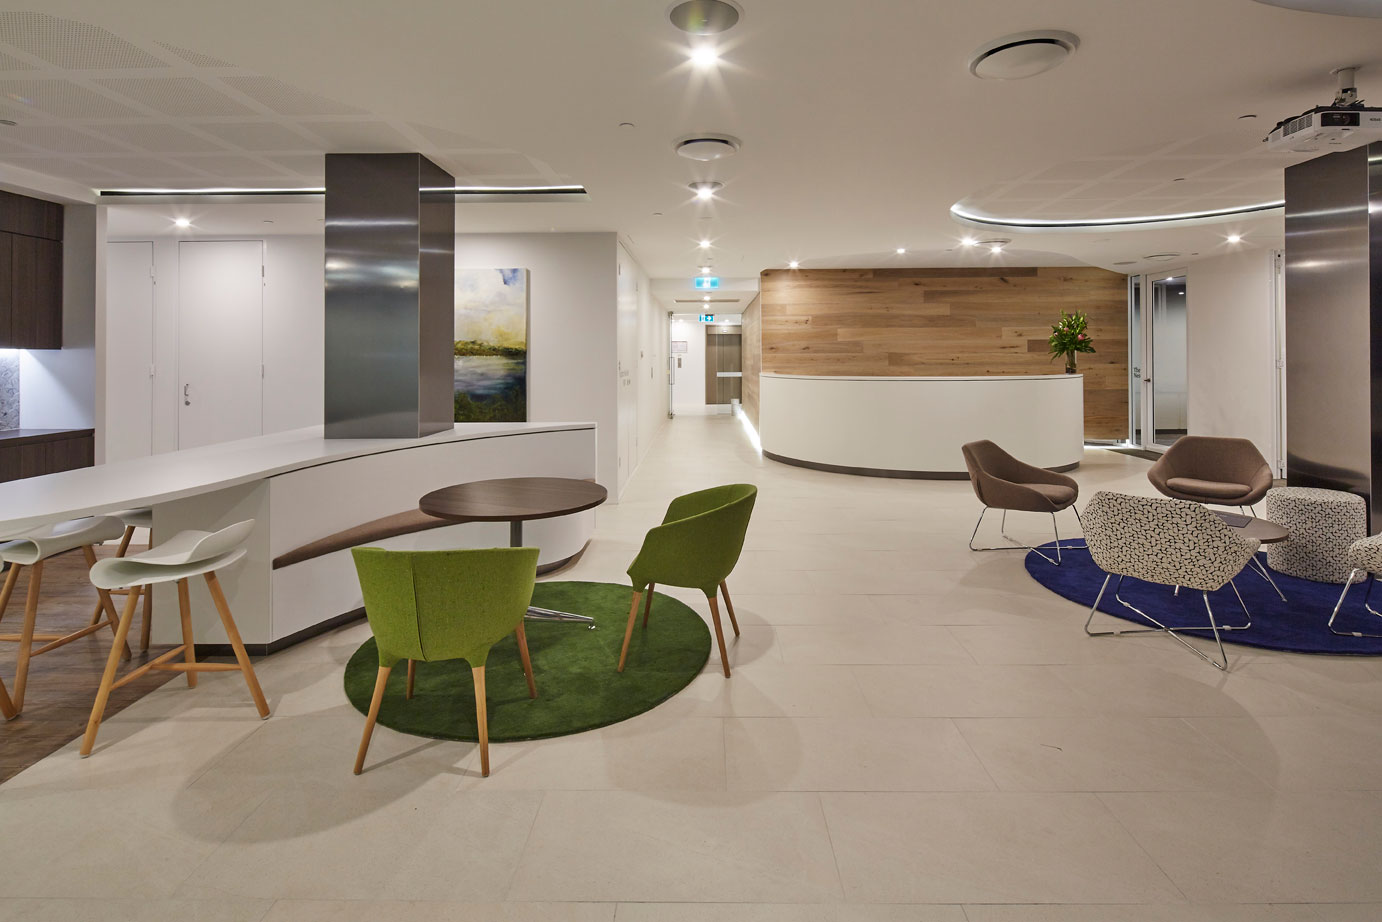 Cbd projects blog bird bird law firm fitout for Commercial interior design firms the list